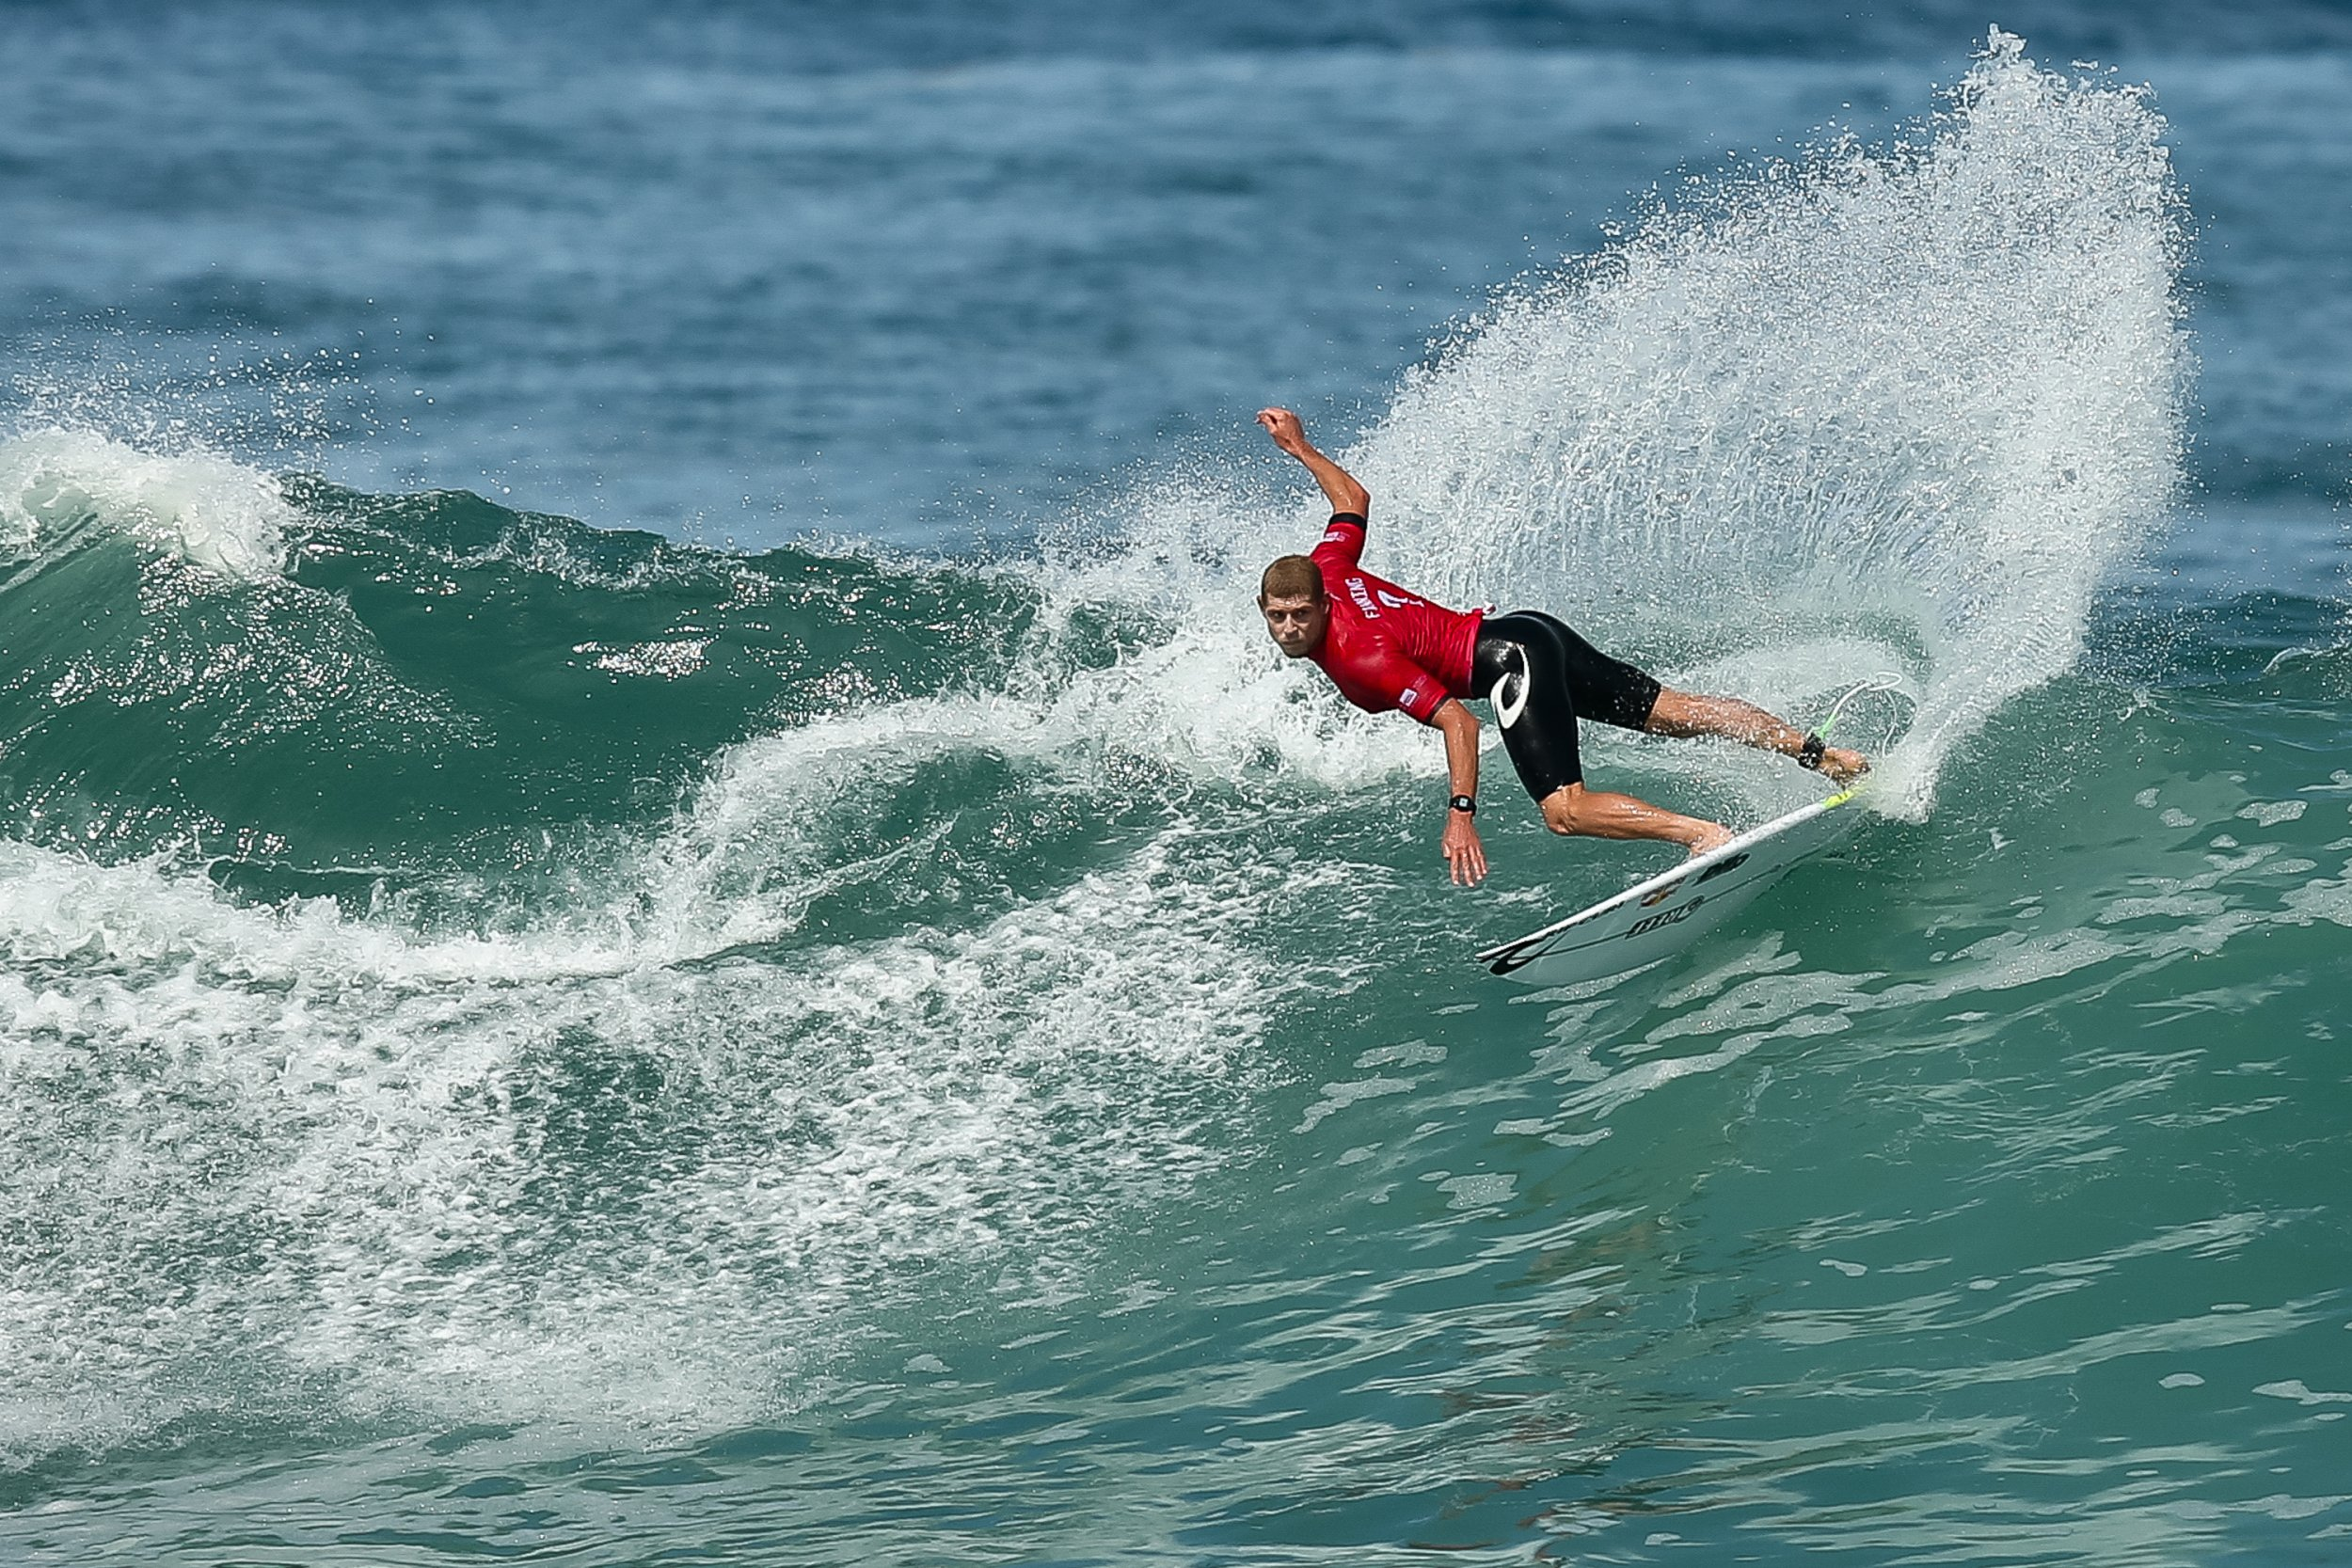 Mick Fanning of Australia surfs during the quarterfinals of the Oi Rio Pro 2017 at Itauna Beach on May 17.